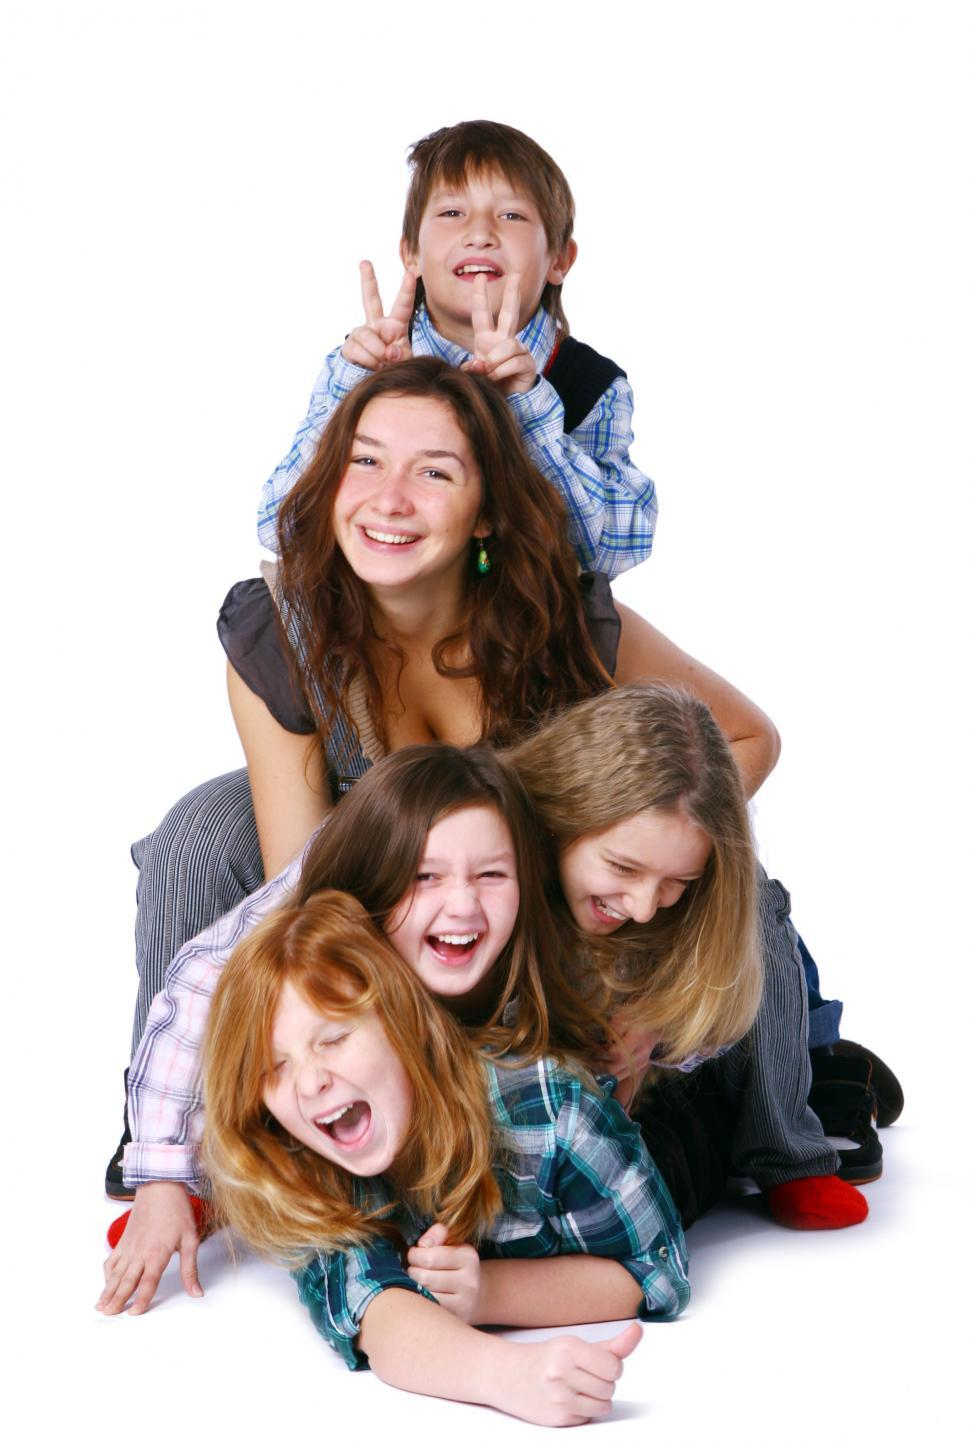 Download Free Stock Photo of Pile of cute and happy kids posing on white background